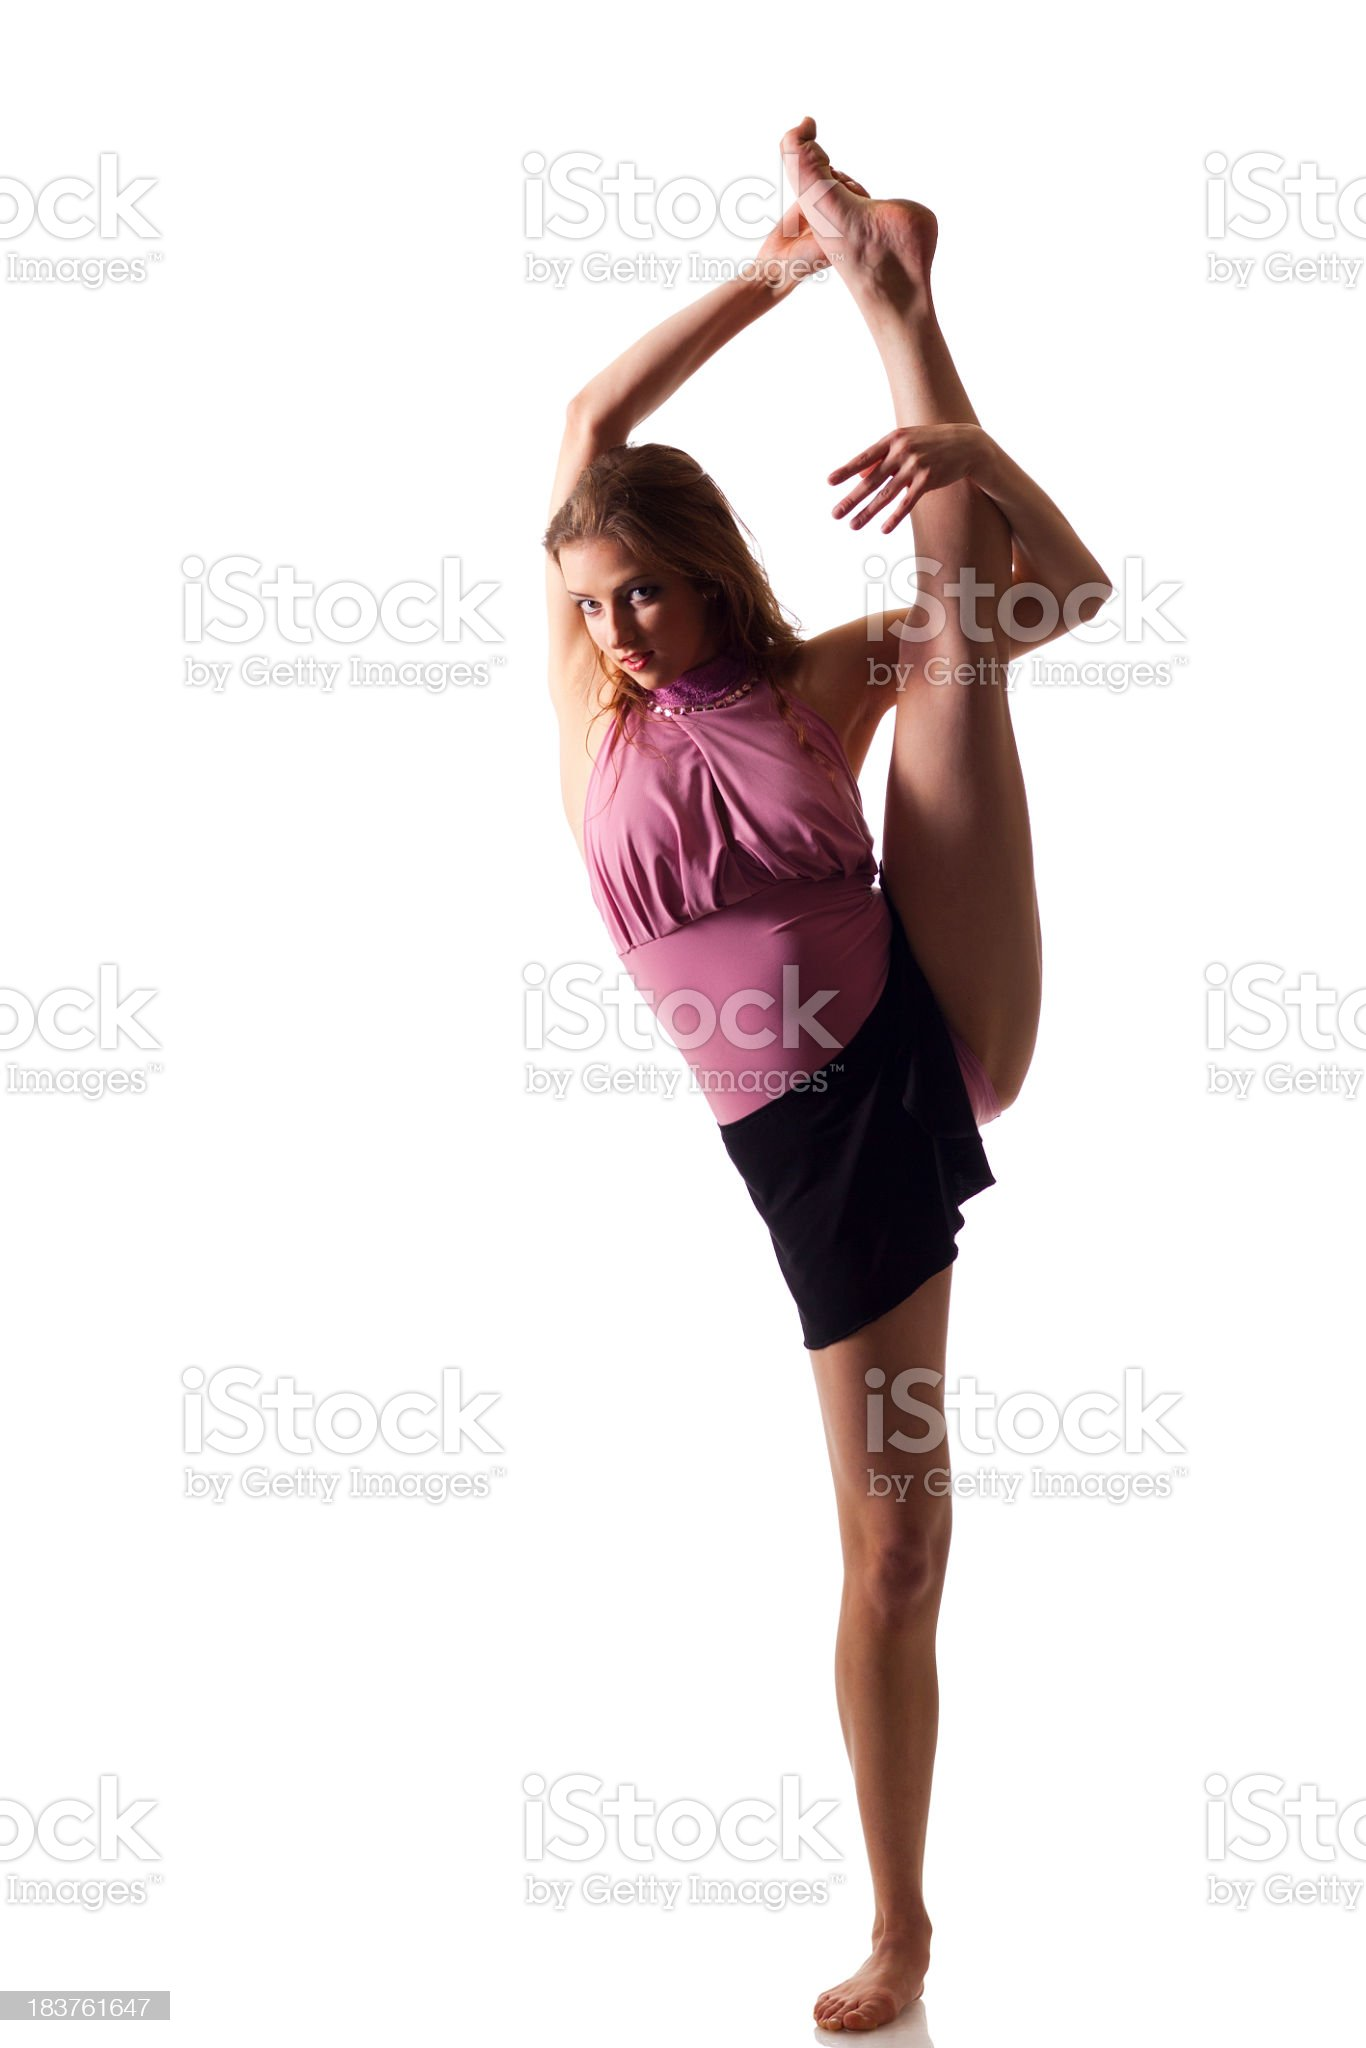 Dancer does a split on white background royalty-free stock photo